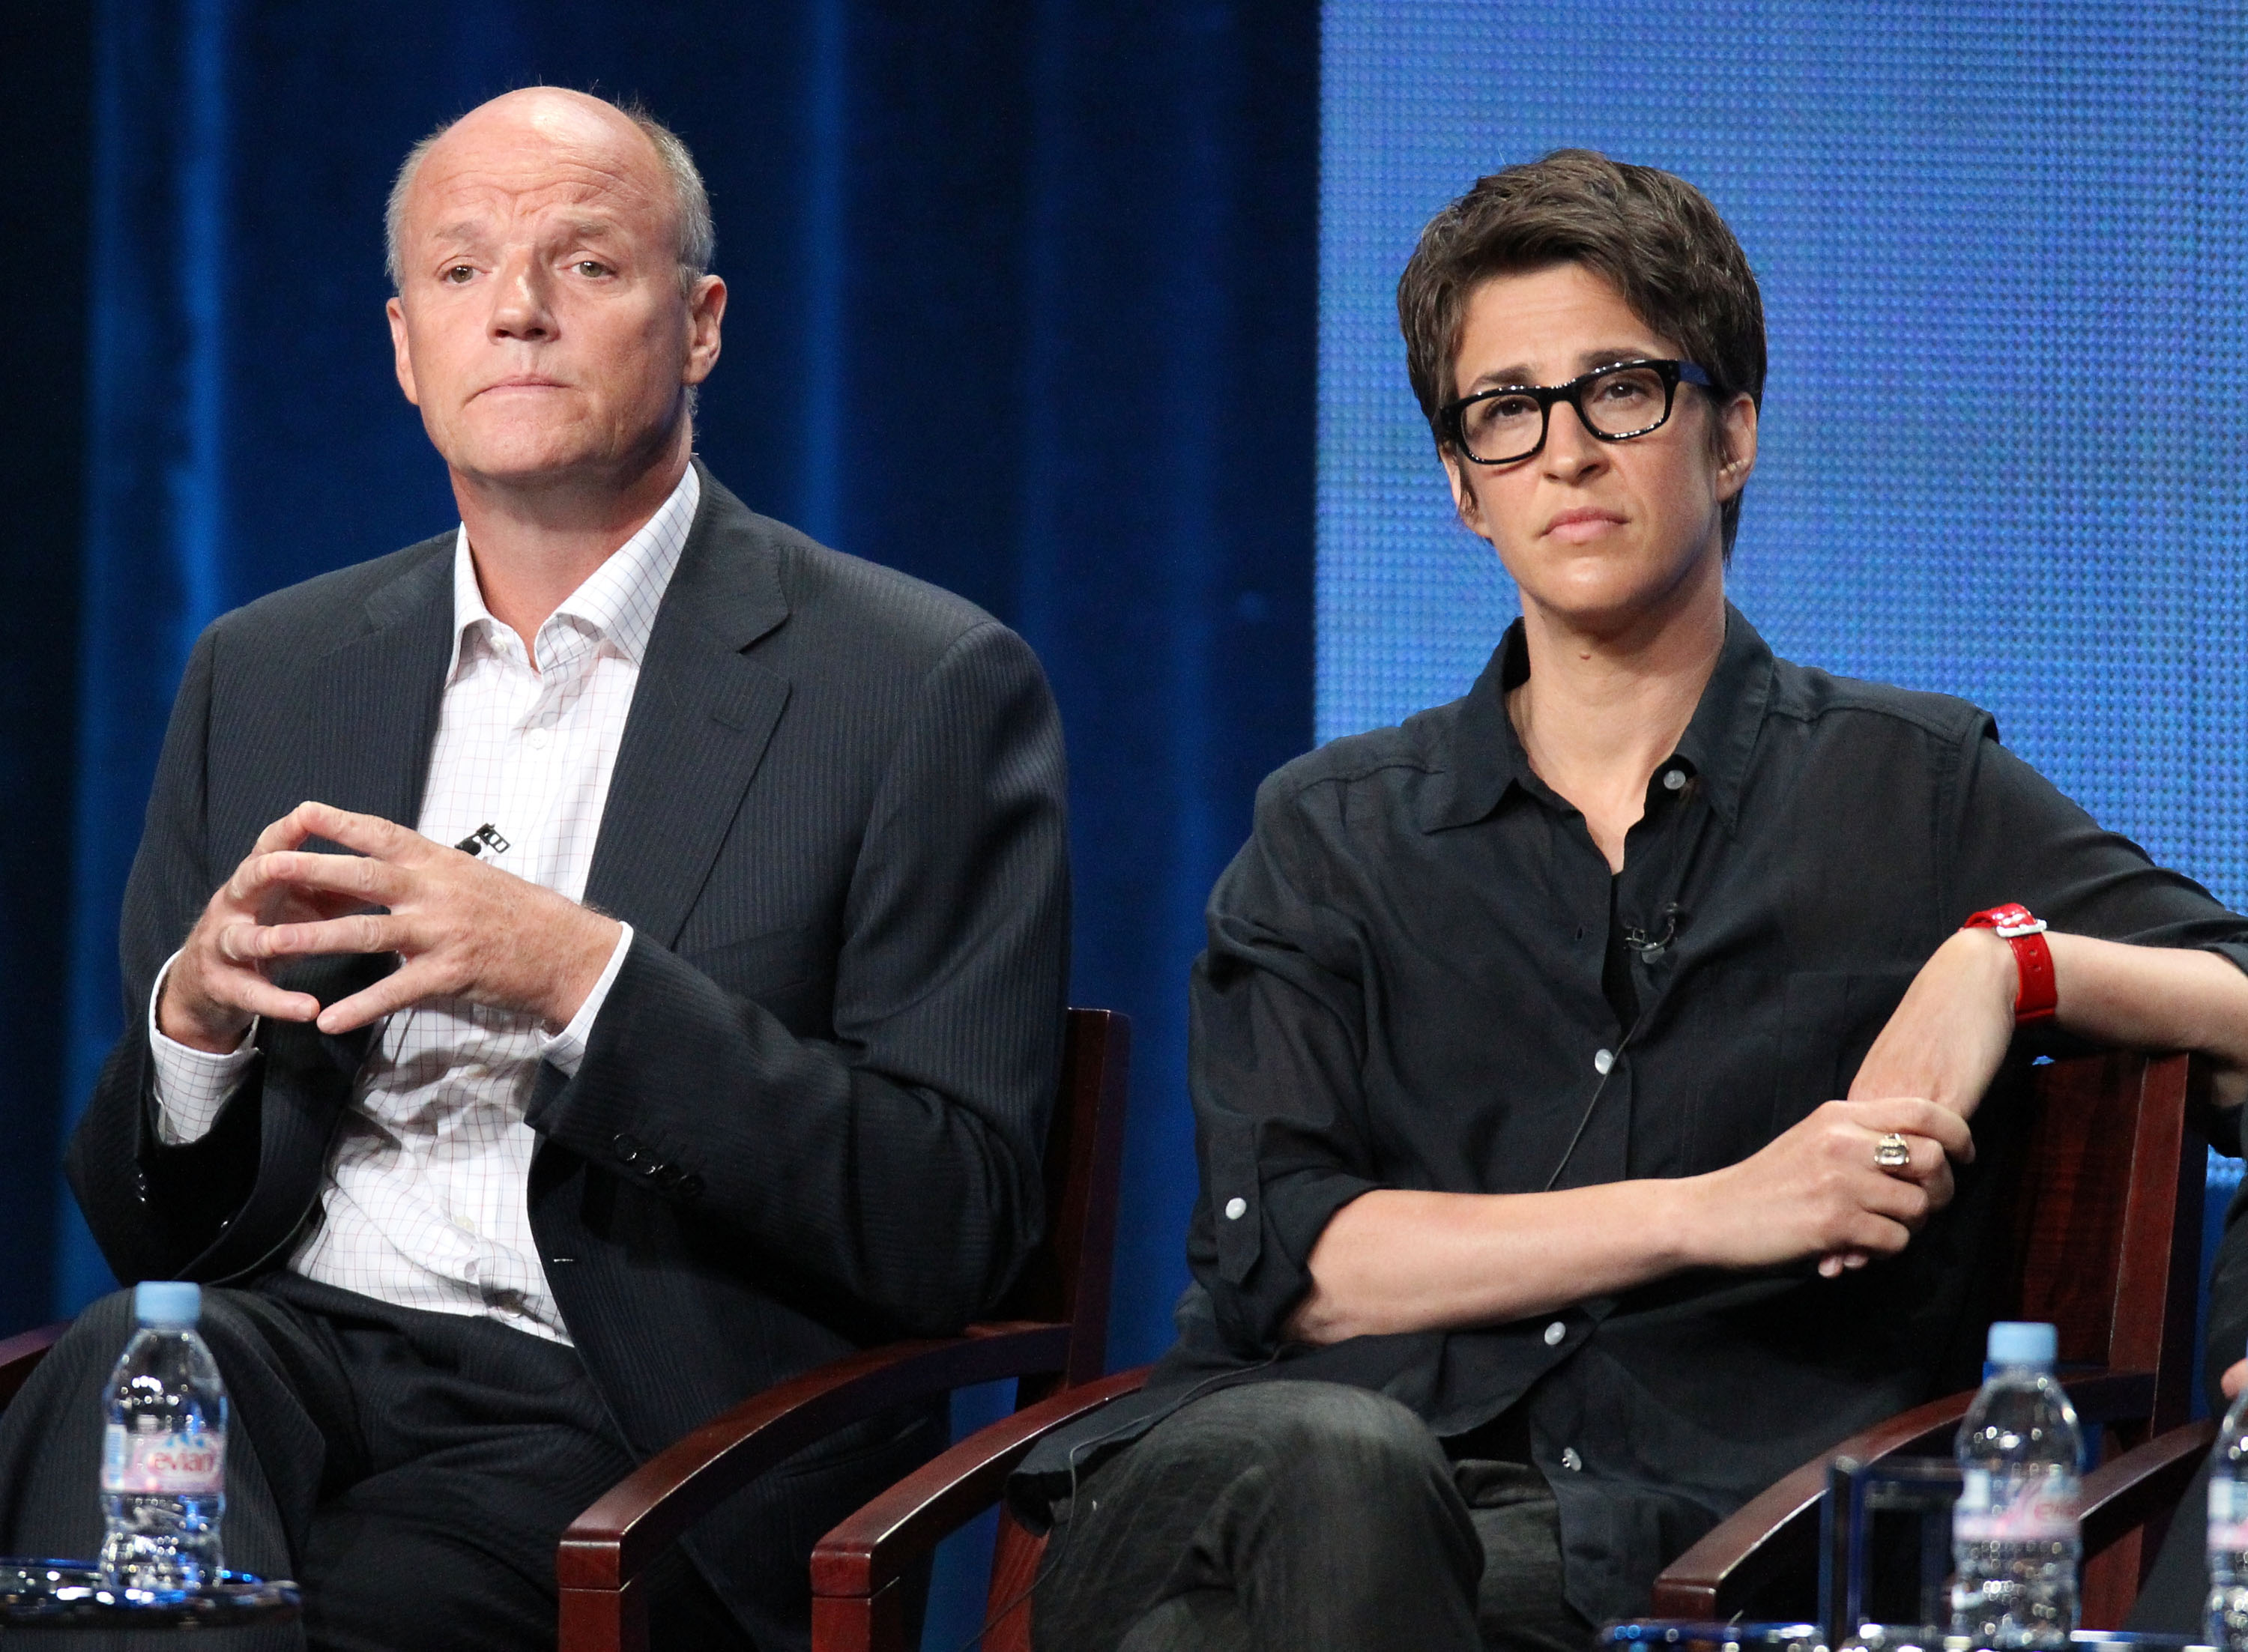 MSNBC Prez Meets With NY Times Editor to Discuss Reported Maddow Ban